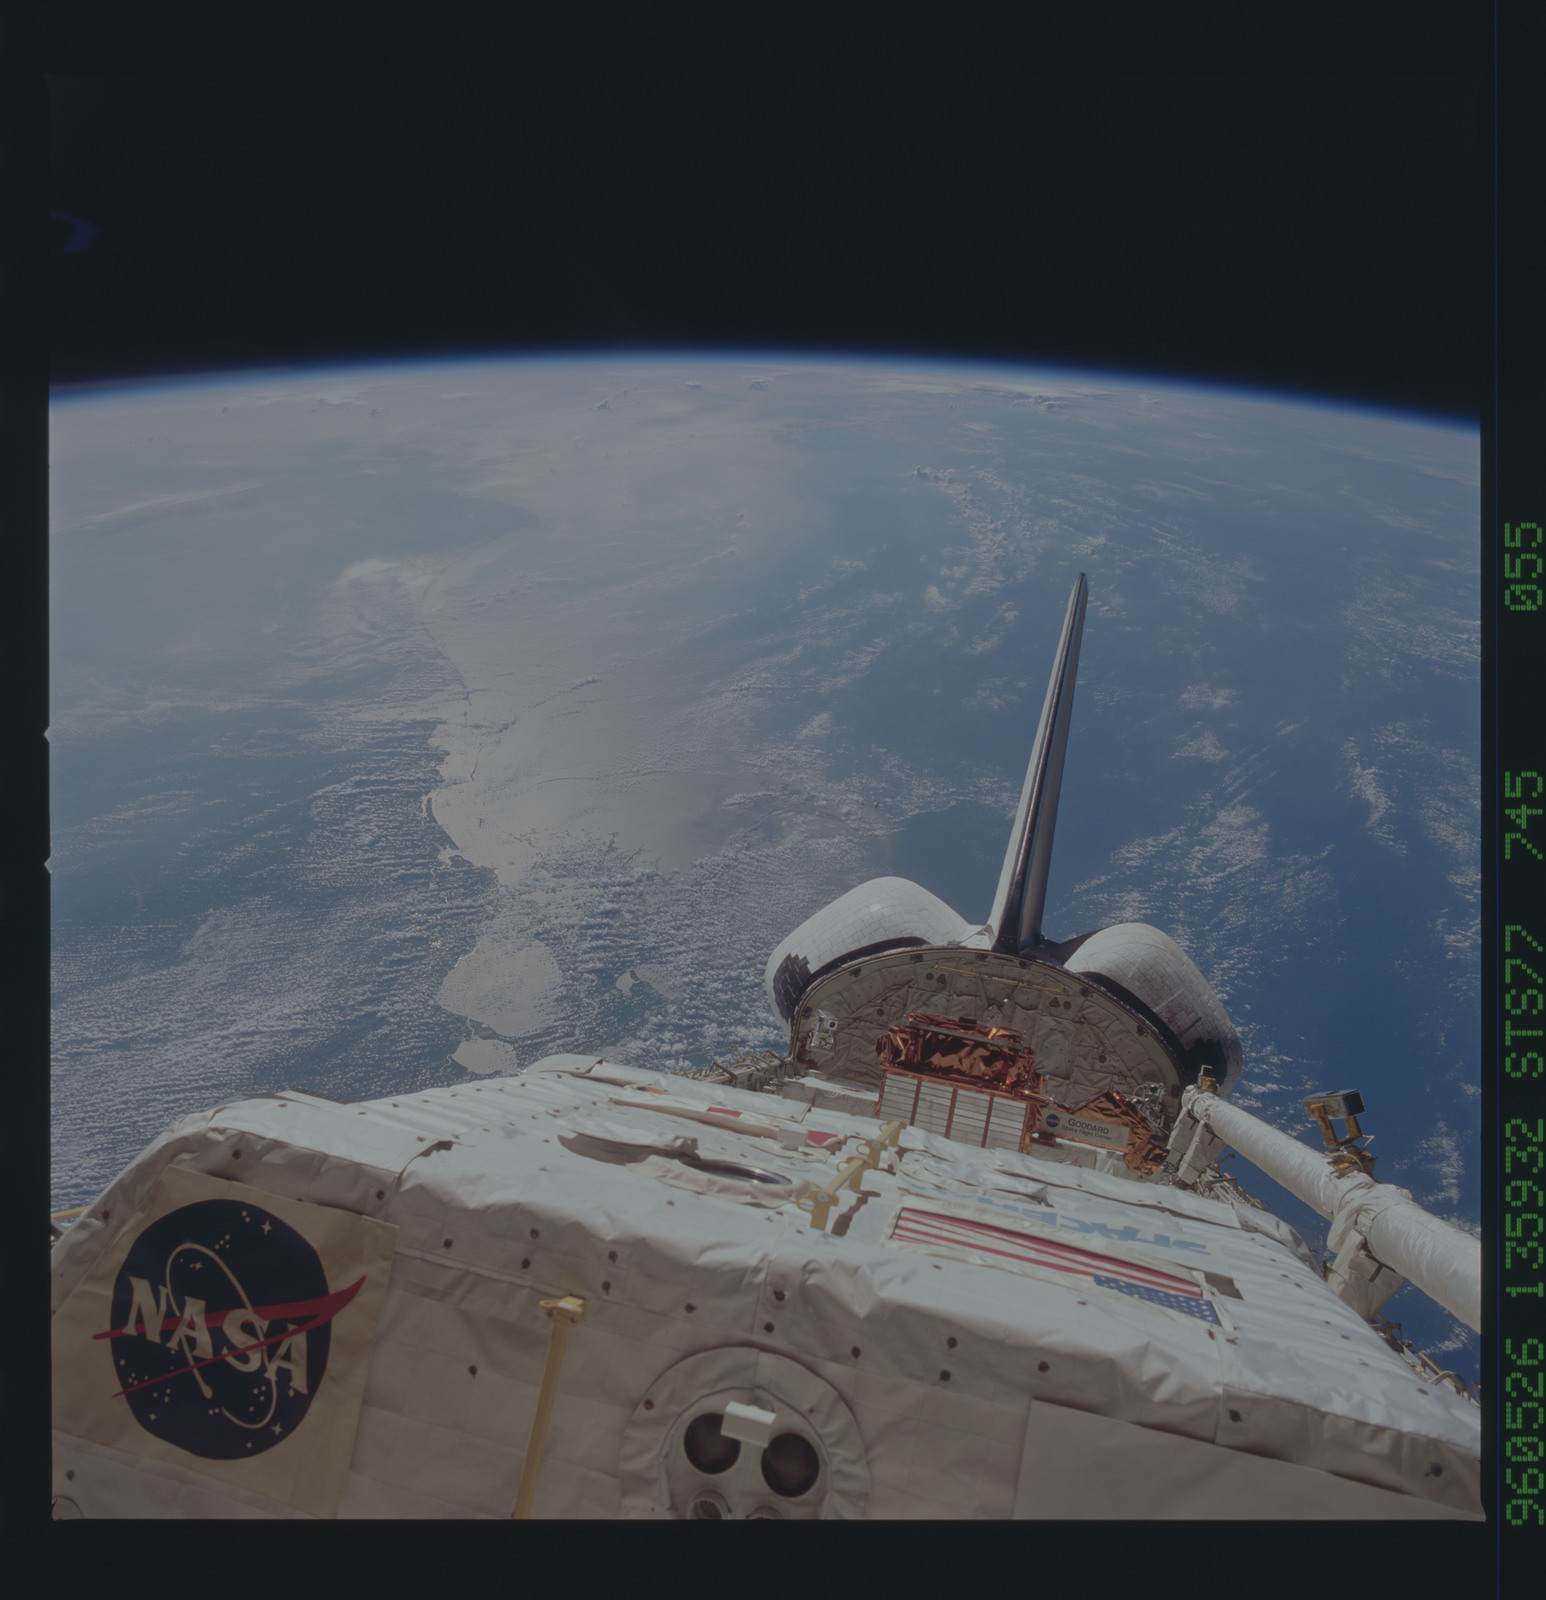 STS077-745-055 - STS-077 - View of the Endeavour's payload bay